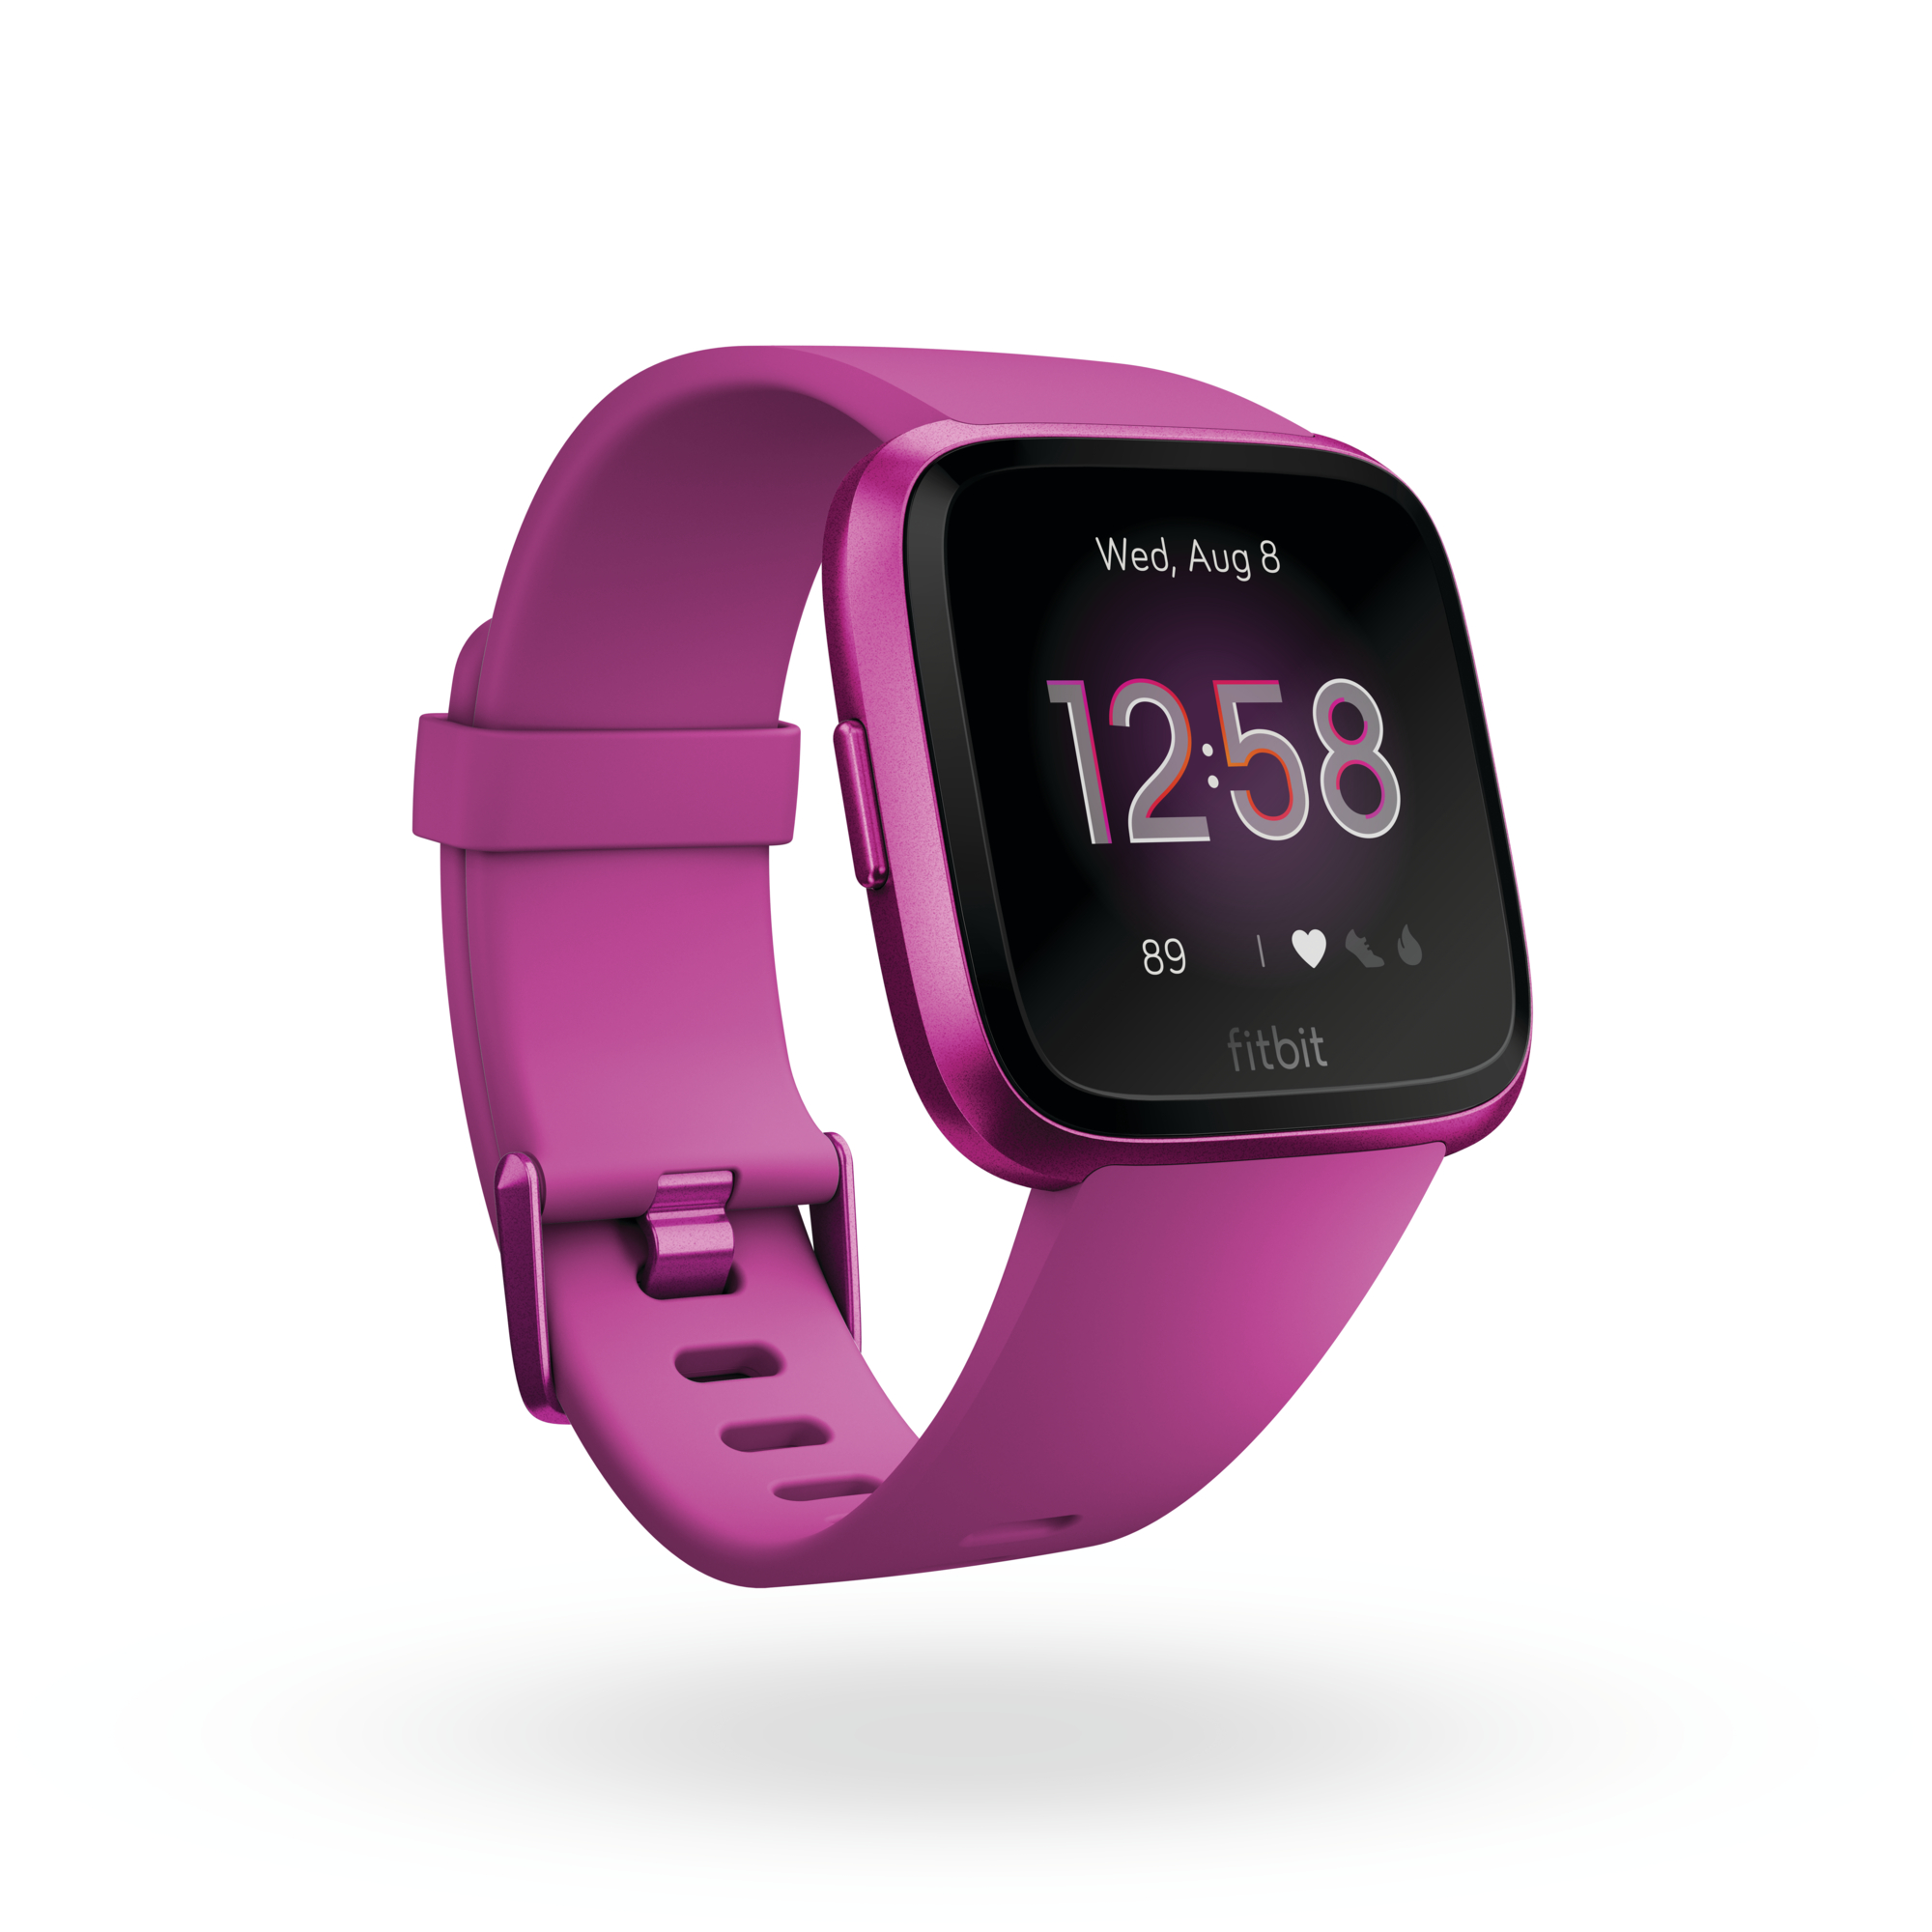 Fitbit launches lower-cost fitness devices to combat Samsung, Apple